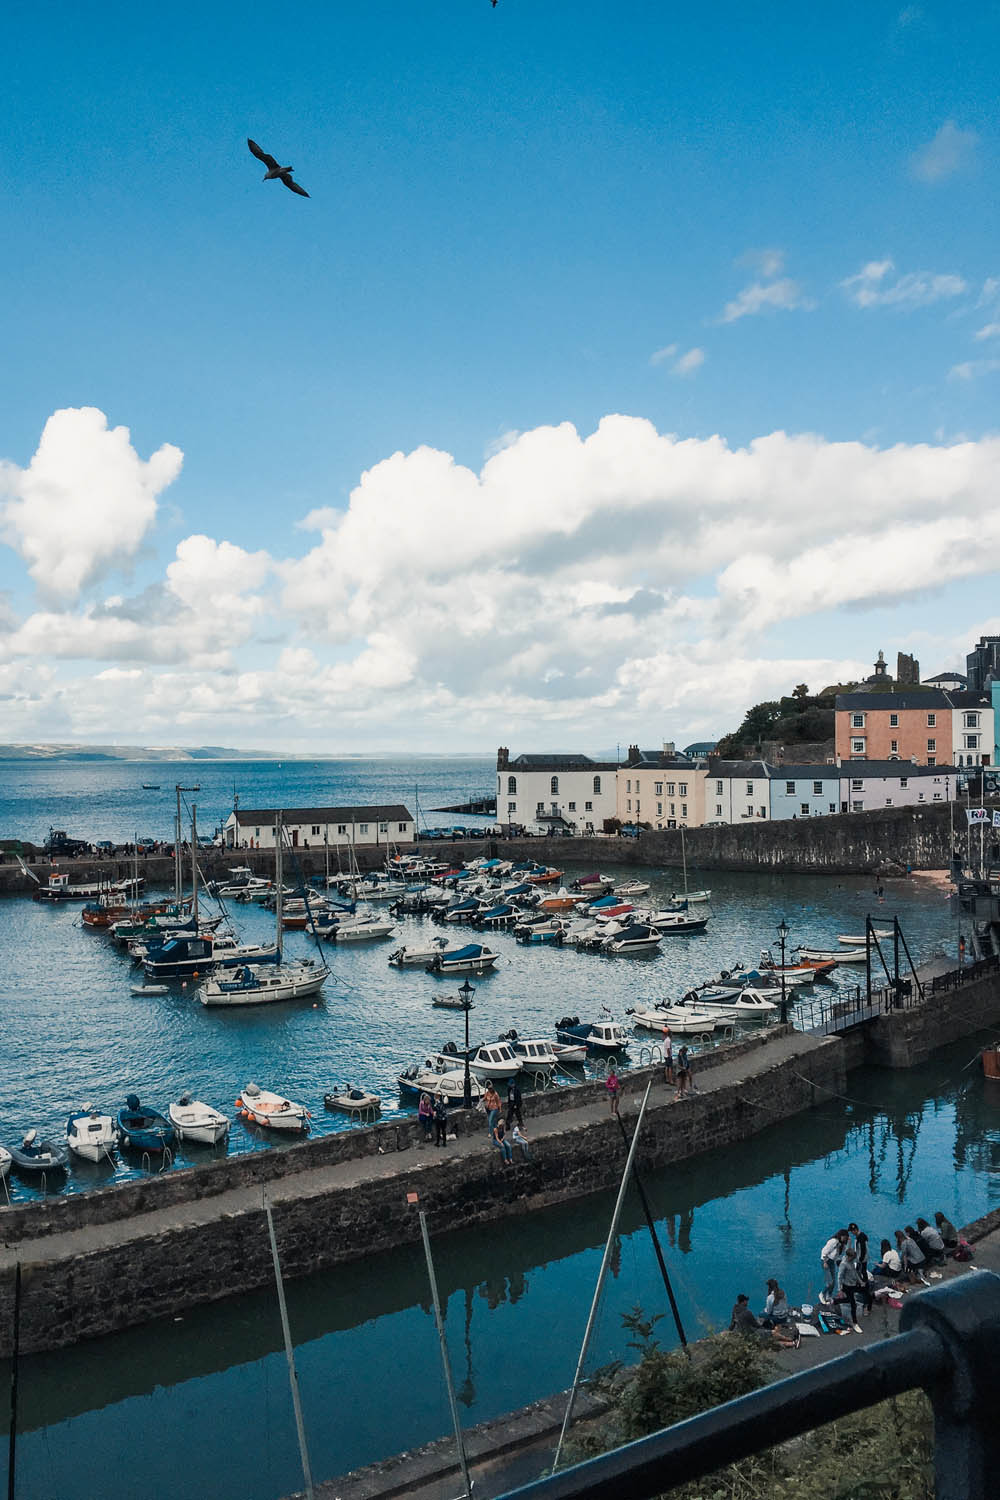 Tenby Harbour, Roadtrip in South Wales